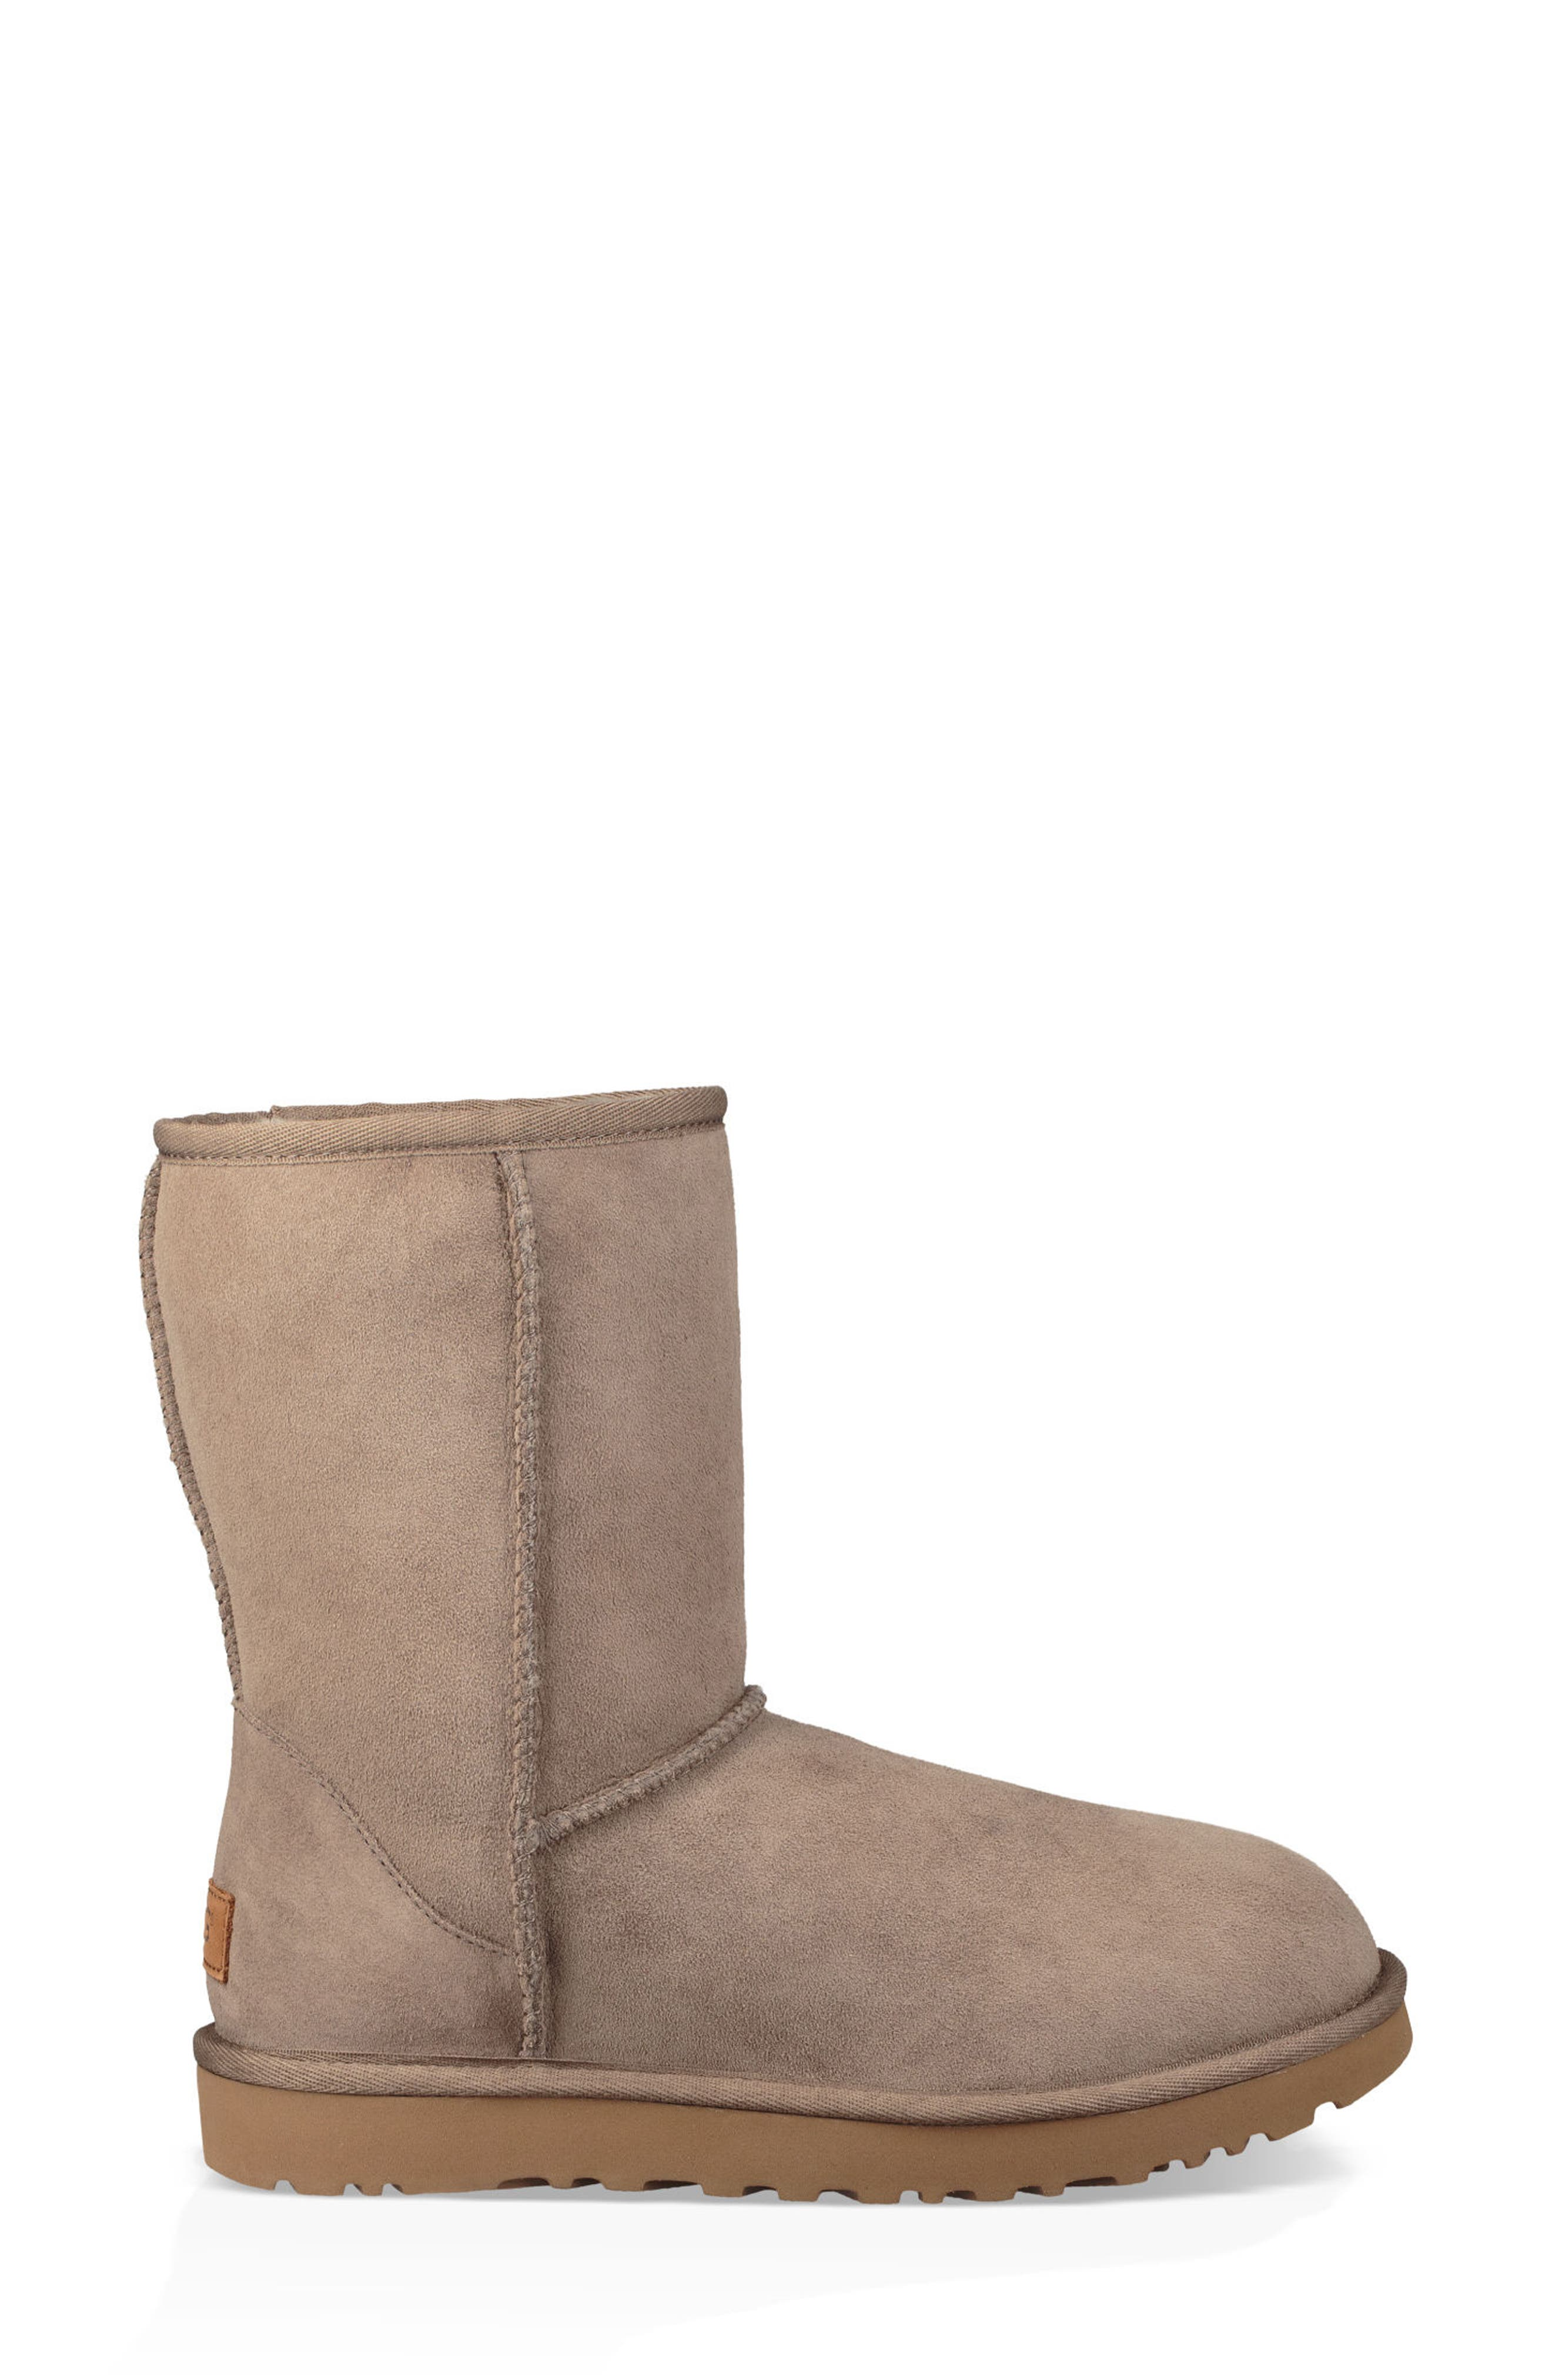 'Classic II' Genuine Shearling Lined Short Boot,                             Alternate thumbnail 4, color,                             BRINDLE SUEDE